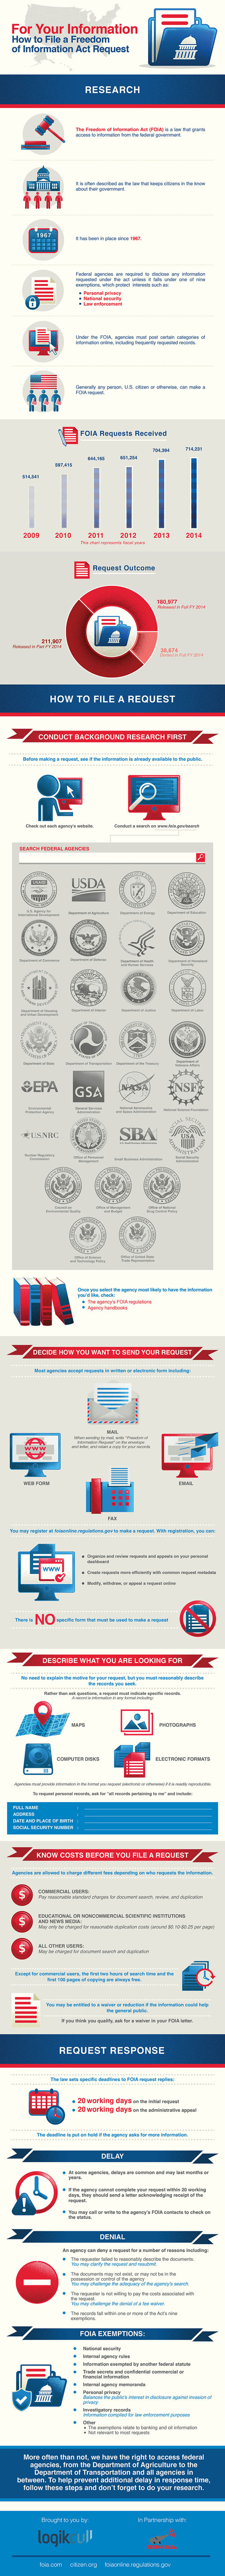 foia-request-infographic